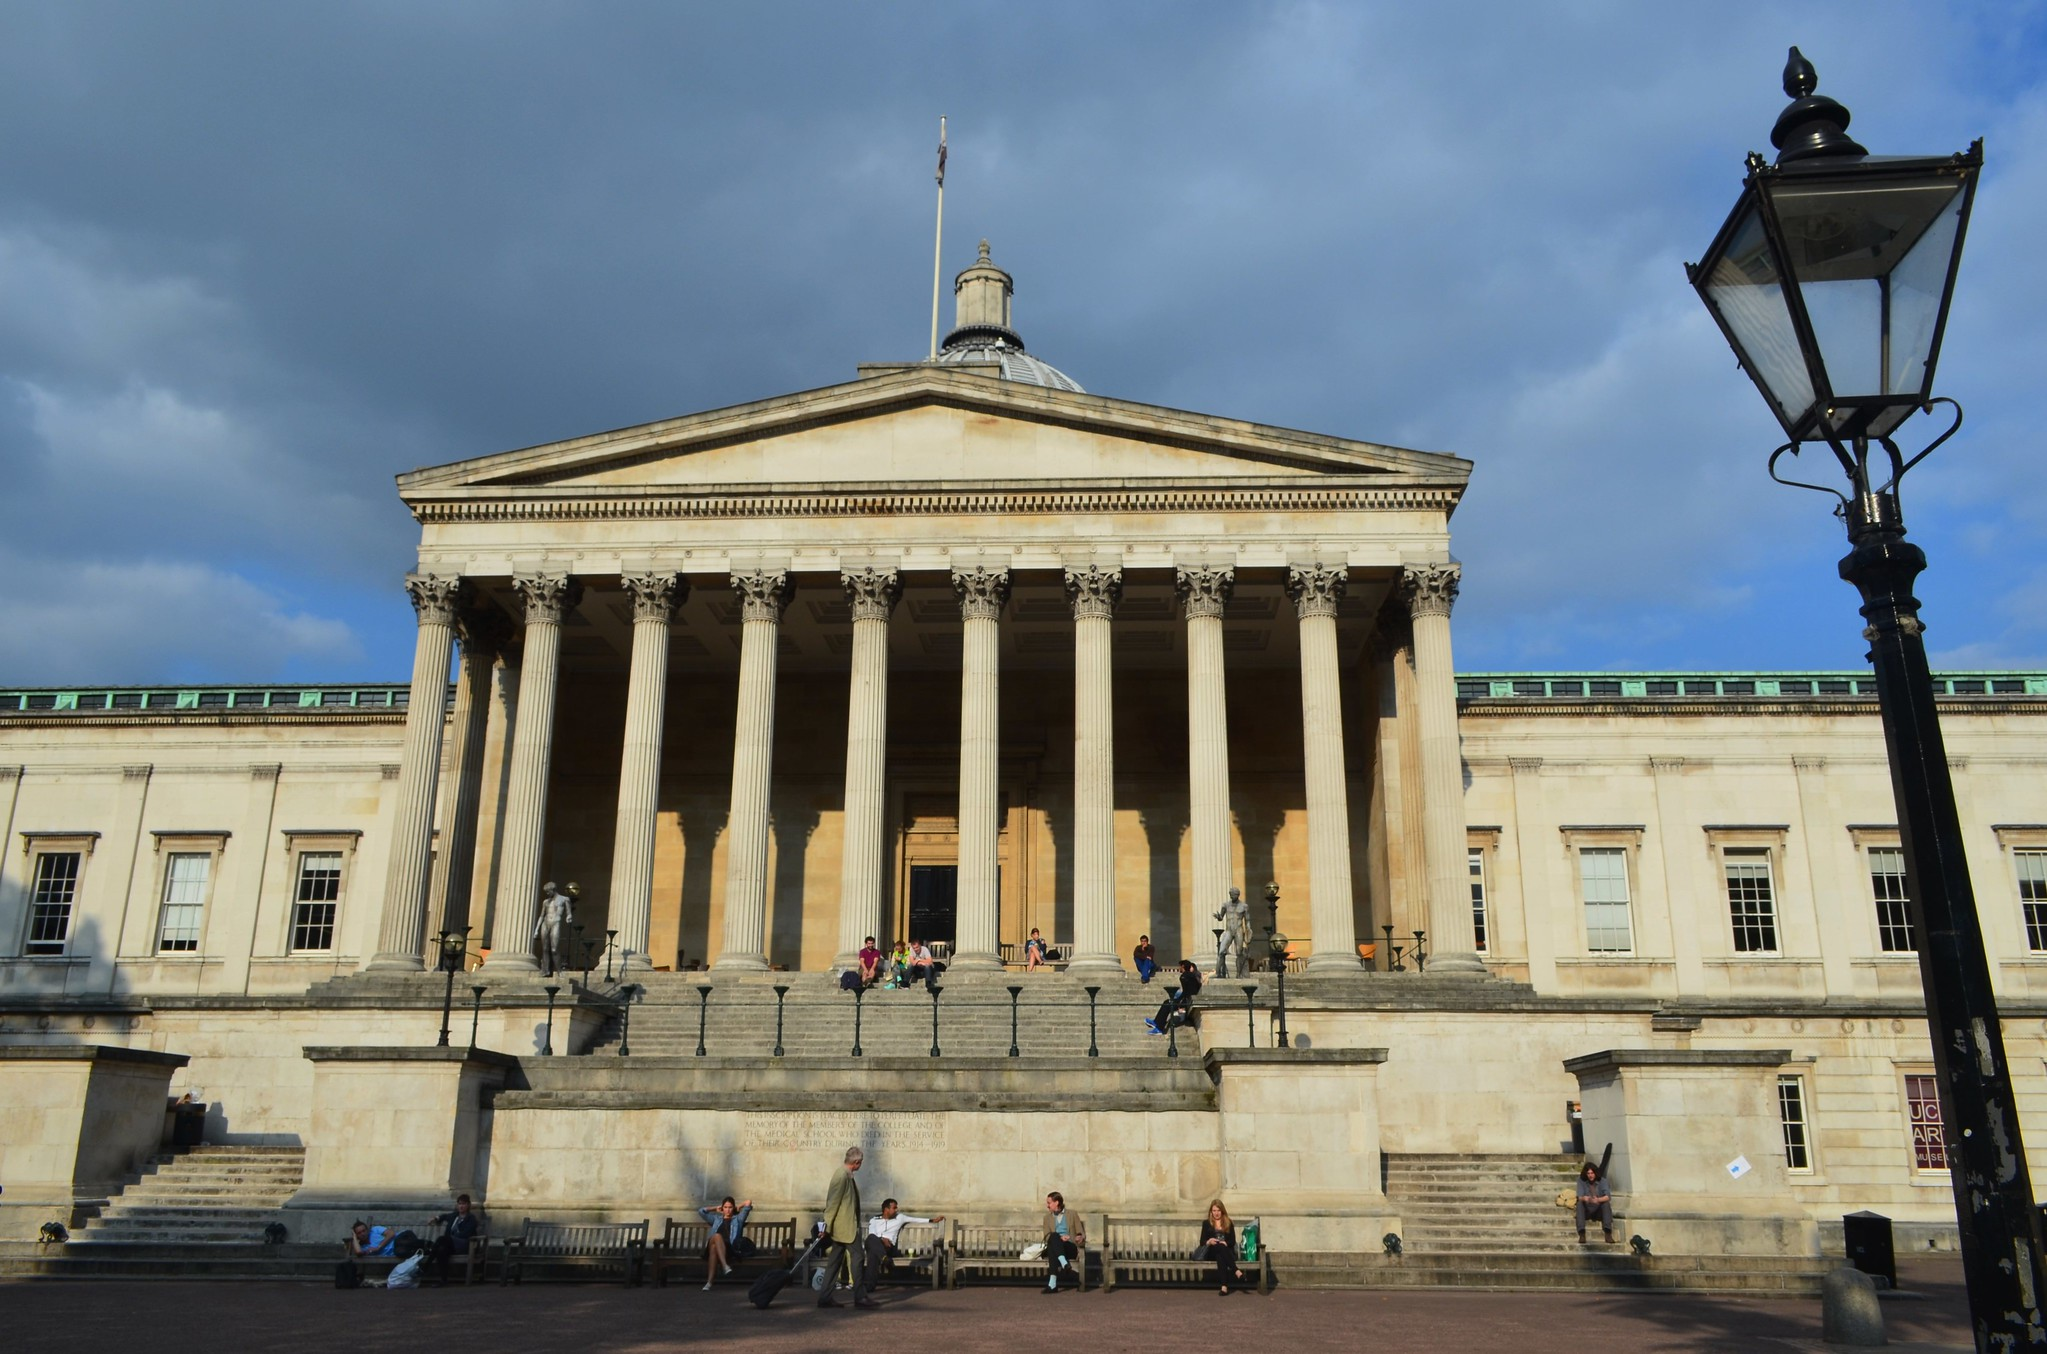 UCL, London